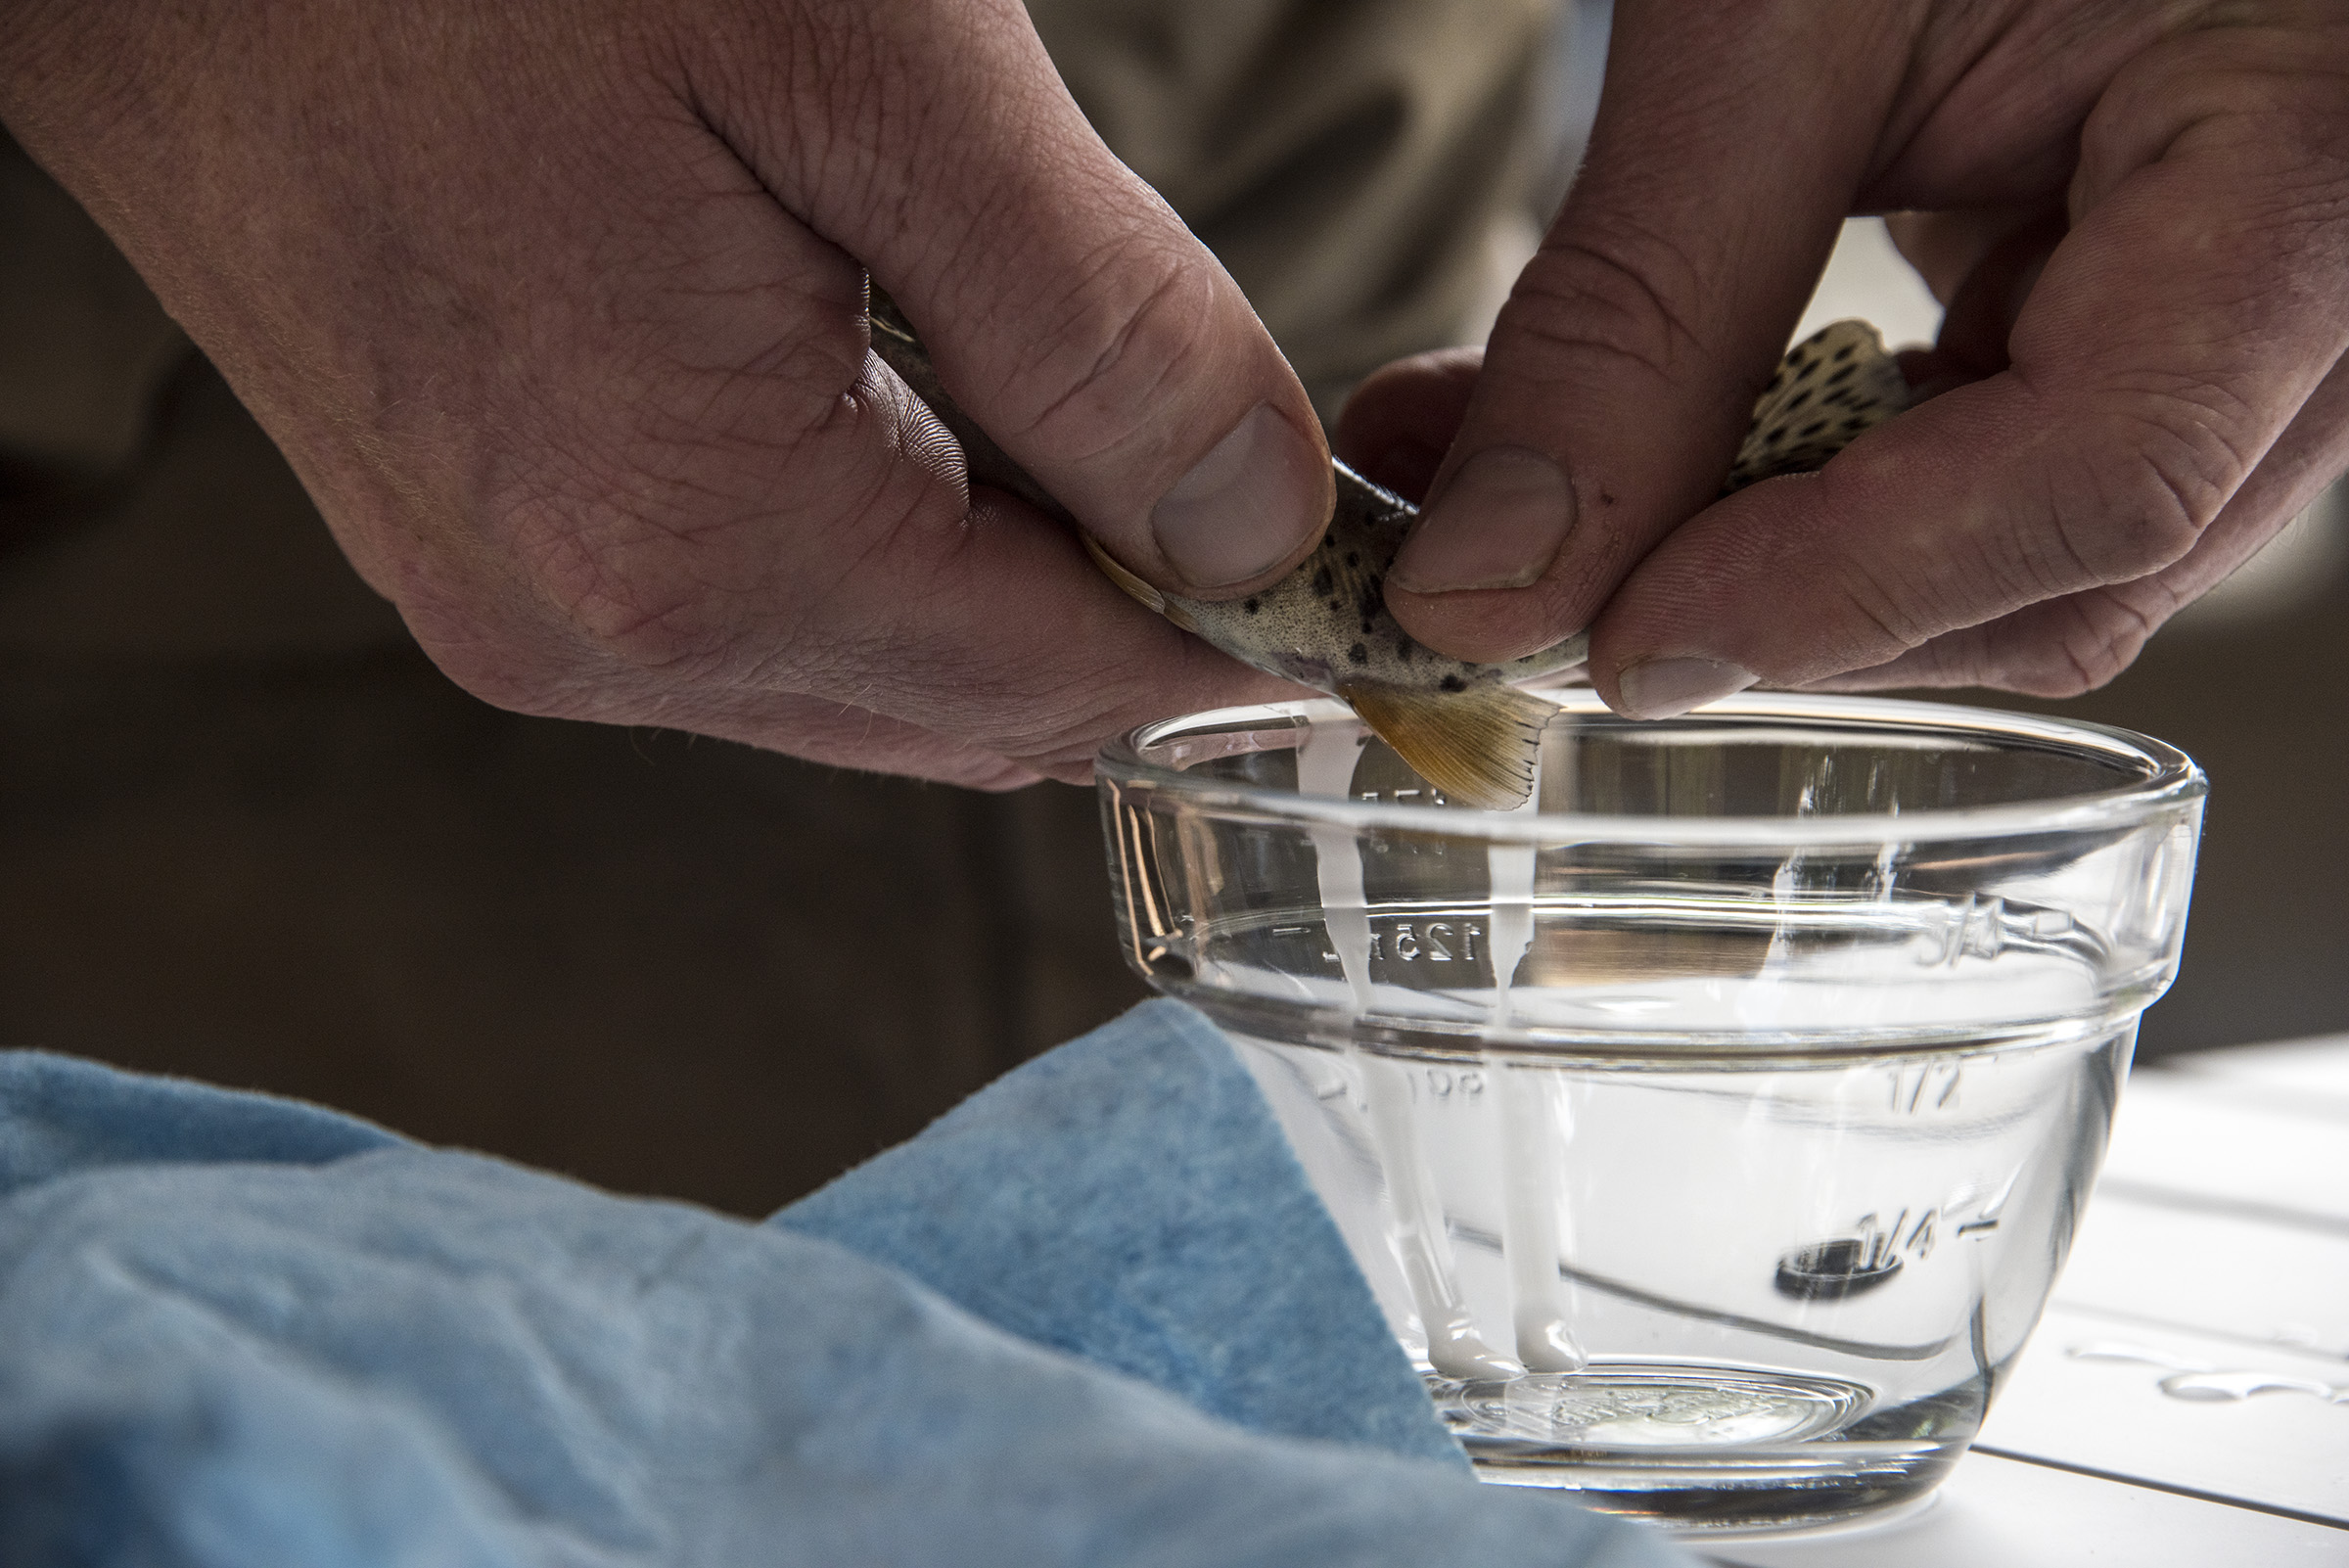 Milt extracted from a ripe male greenback cutthroat trout. (Mariah Lundgren)